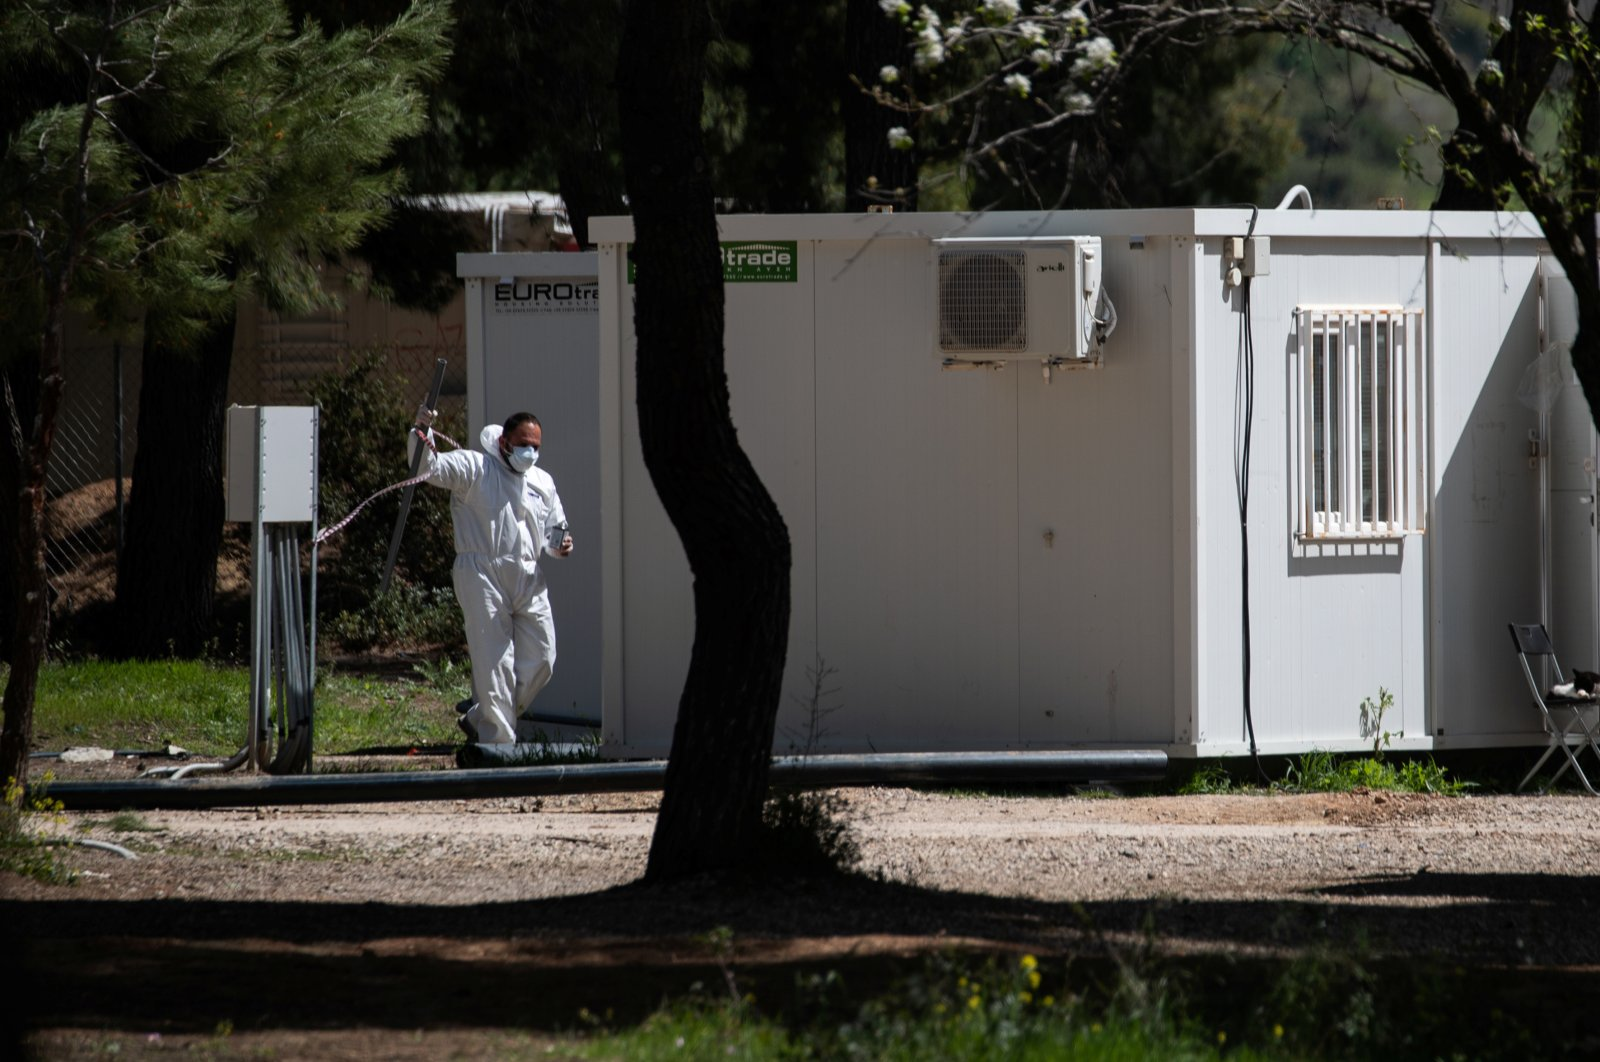 A man wearing a protective suit and a face mask makes his way in the Ritsona migrant camp after authorities found 20 coronavirus cases and placed the camp under quarantine, following the outbreak of coronavirus disease (COVID-19), in Ritsona, Greece, April 2, 2020. (Reuters Photo)